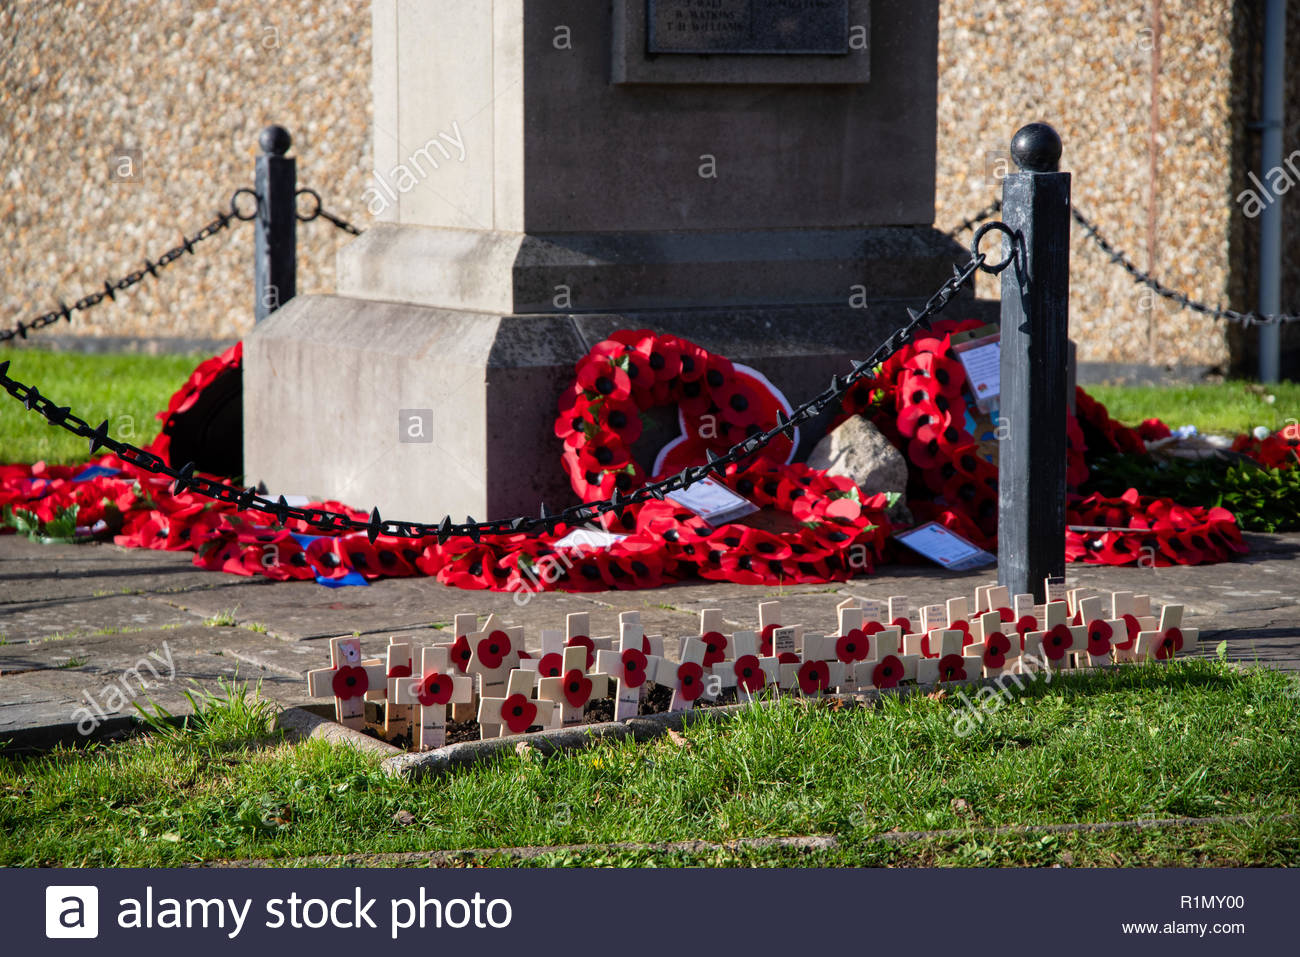 An image of Remembrance Day poppy crosses and wreaths at Rhoose Cenotaph. - Stock Image